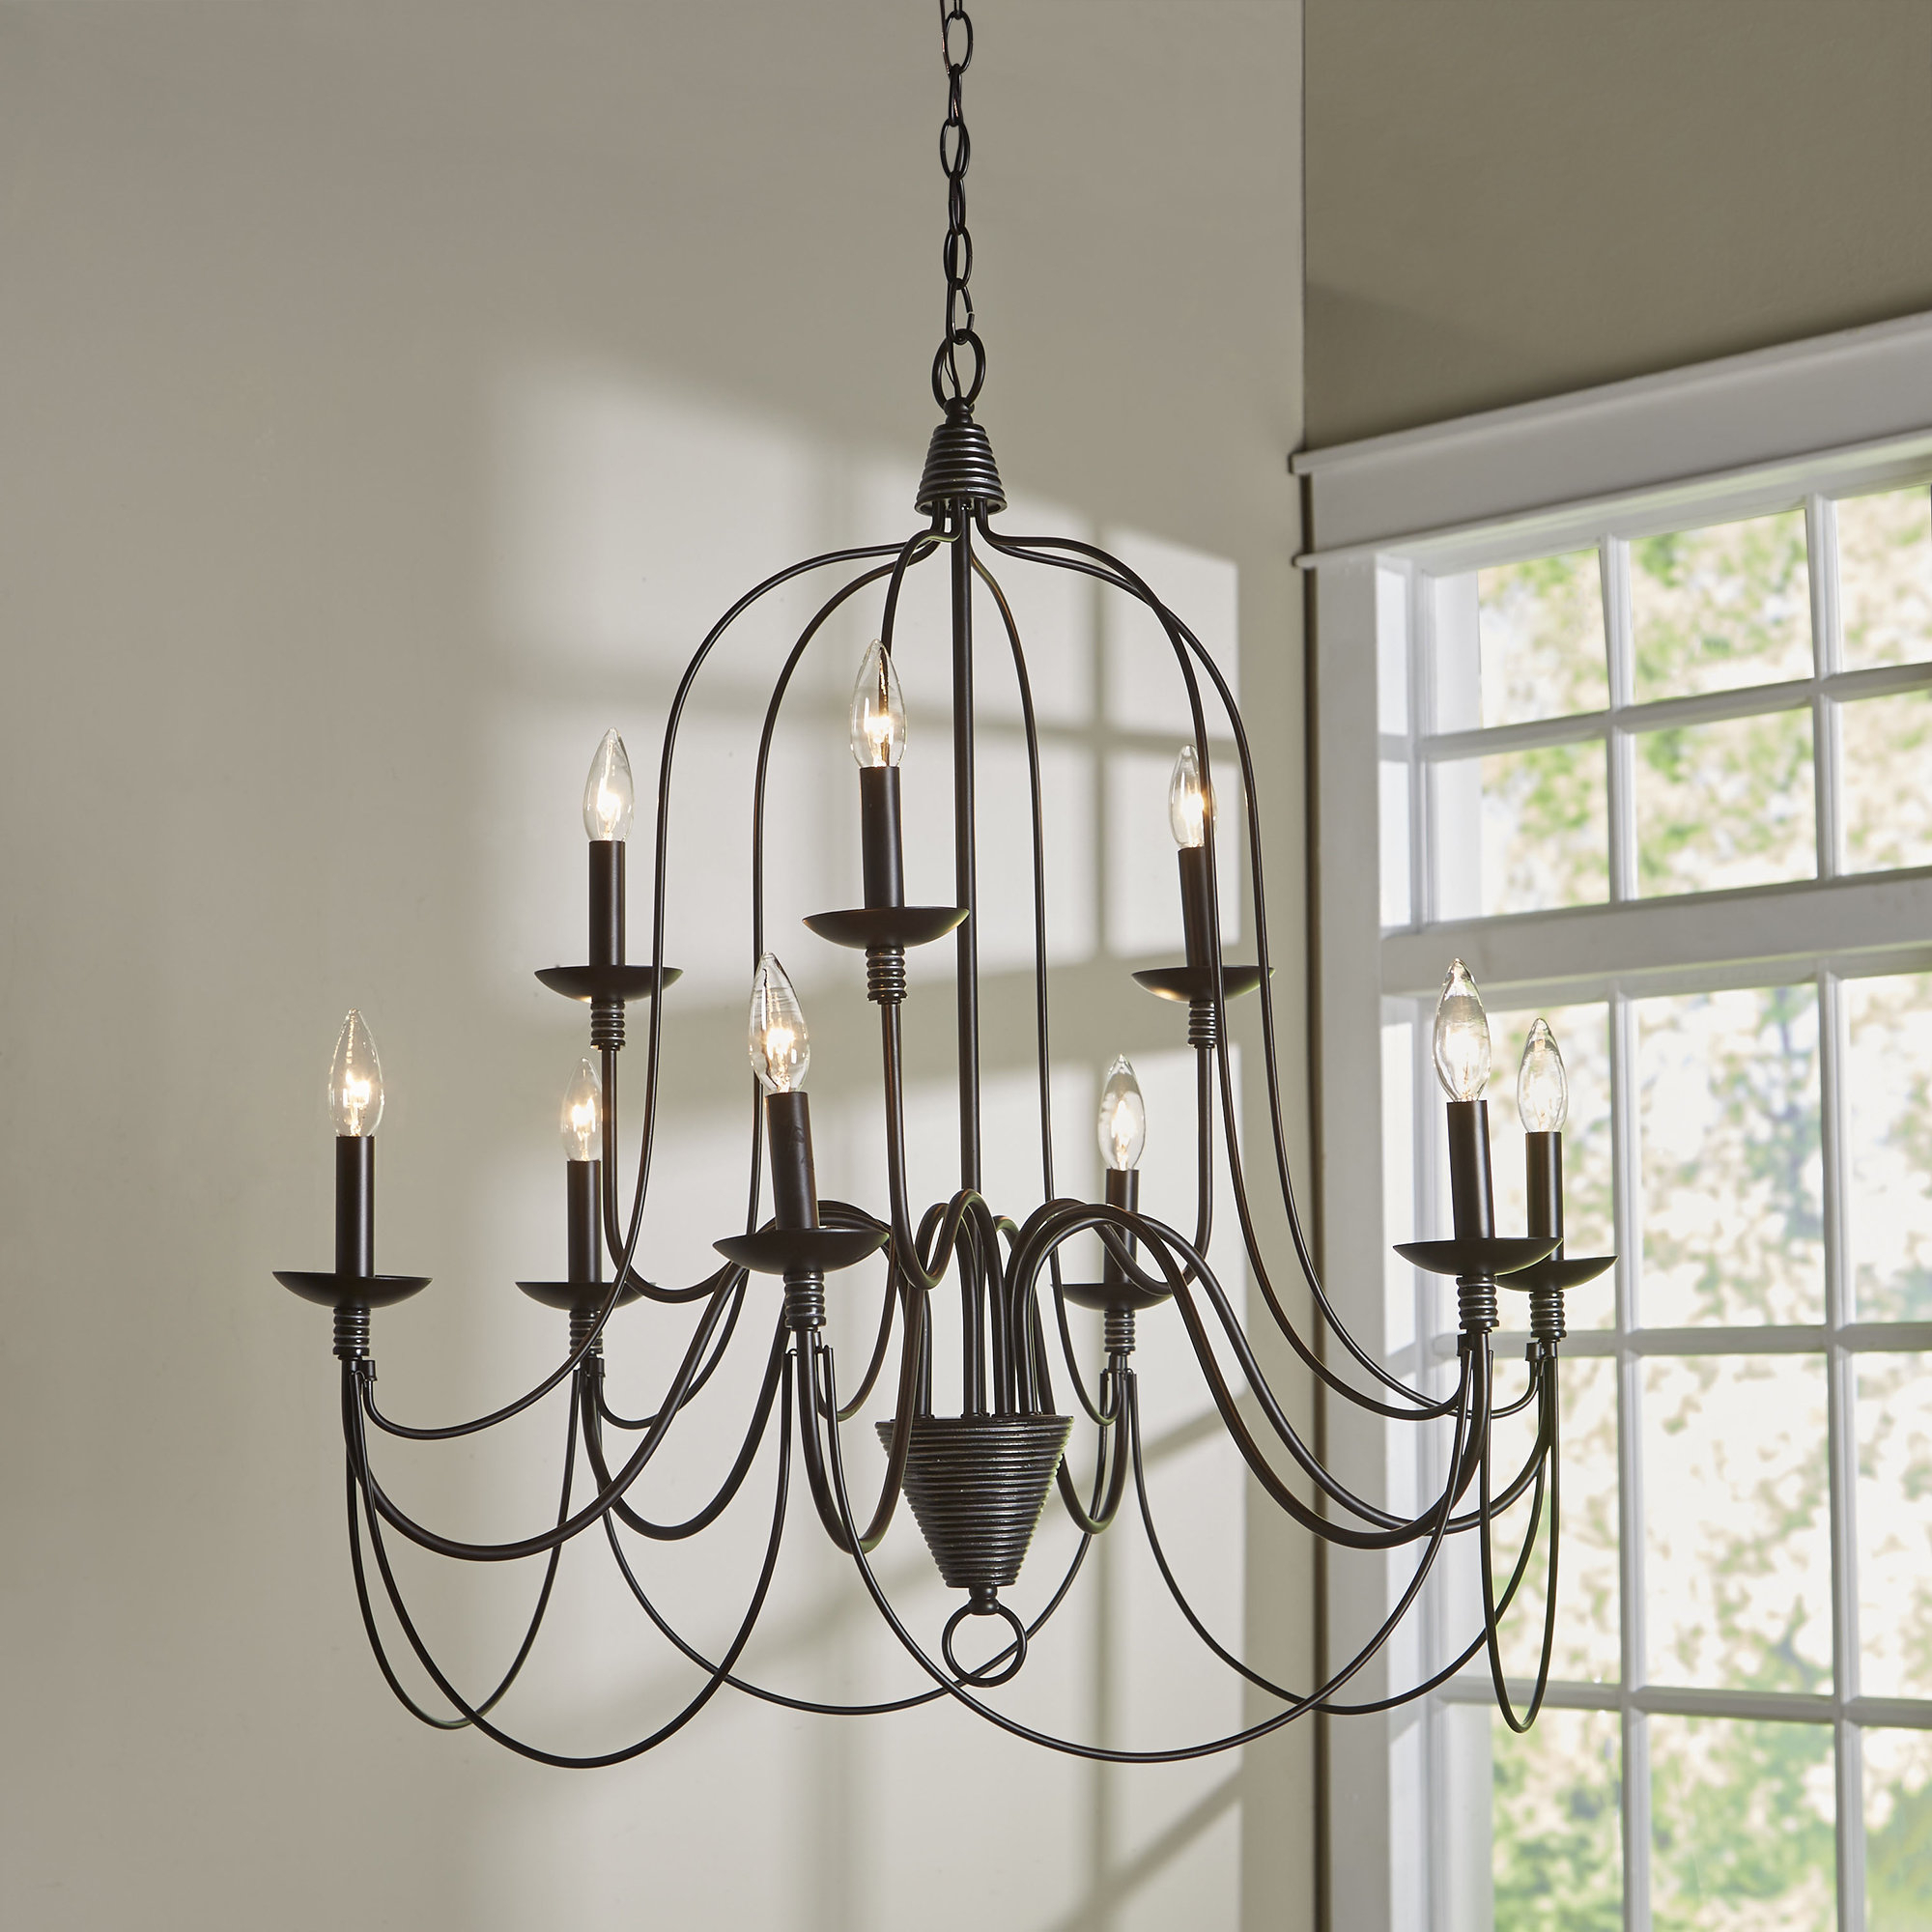 Newest Three Posts Watford 9 Light Candle Style Chandelier Intended For Gaines 9 Light Candle Style Chandeliers (View 15 of 25)